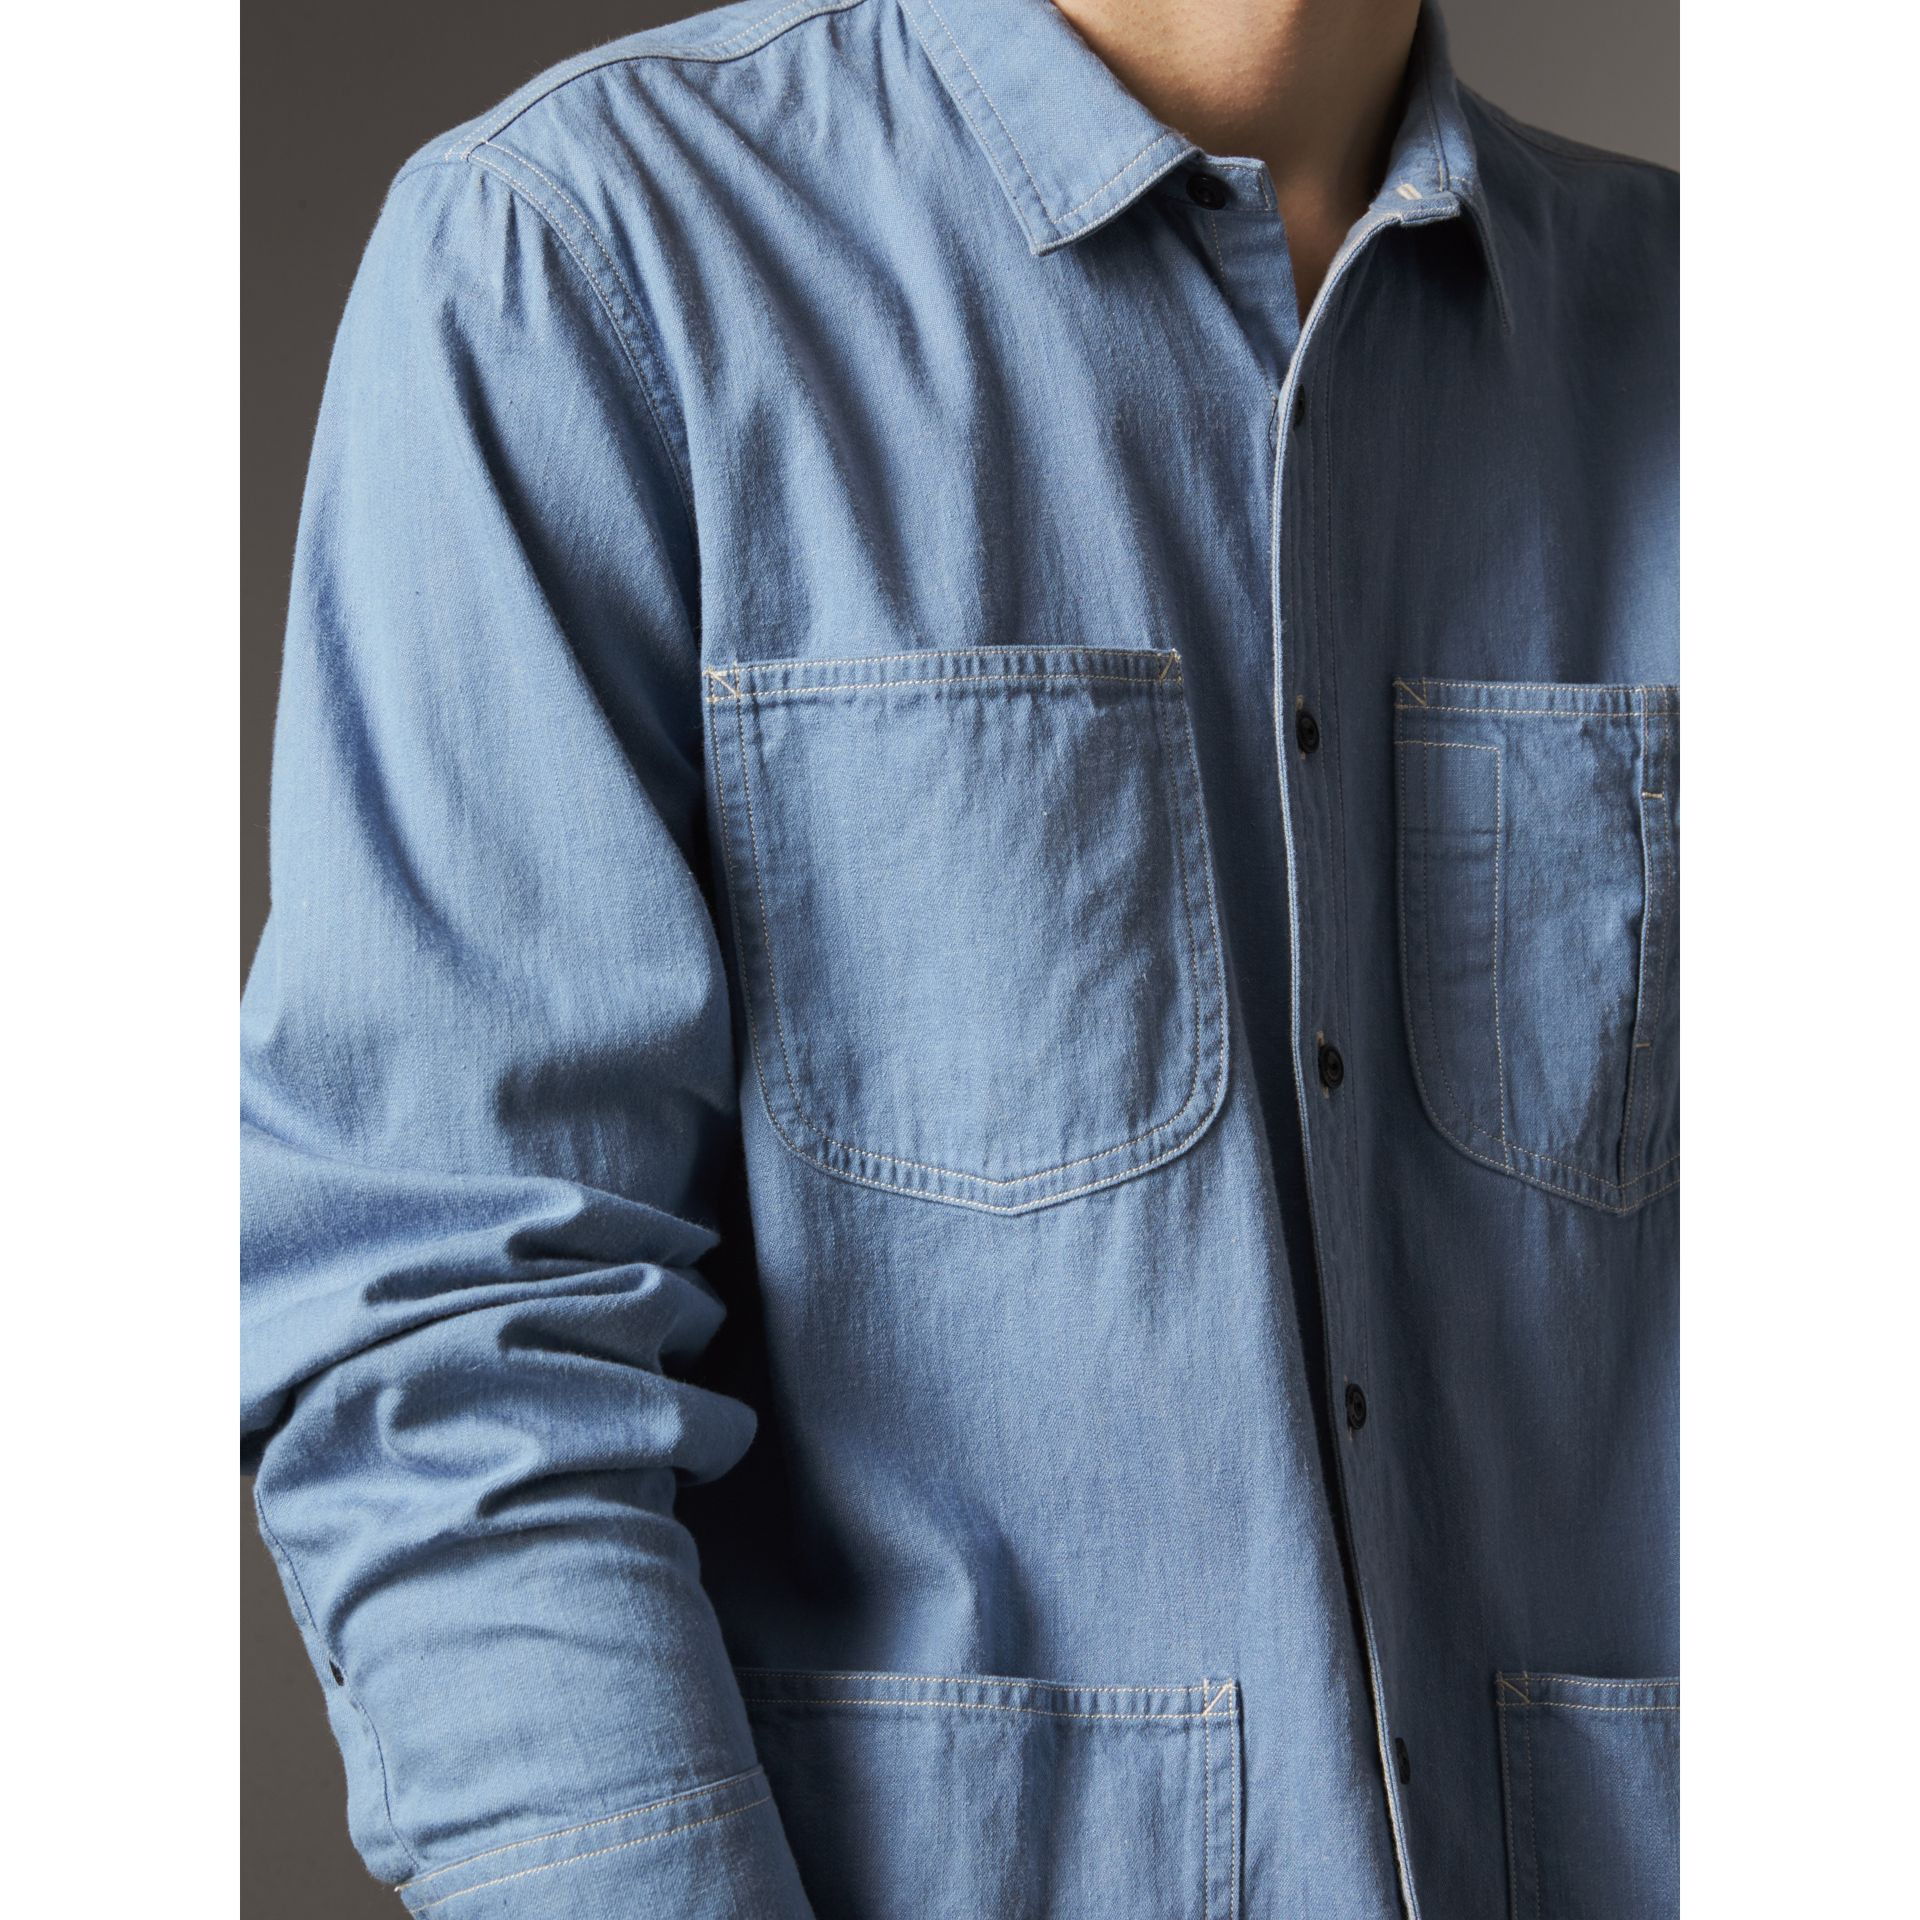 Japanese Denim Work Shirt in Light Blue - Men | Burberry United Kingdom - gallery image 2